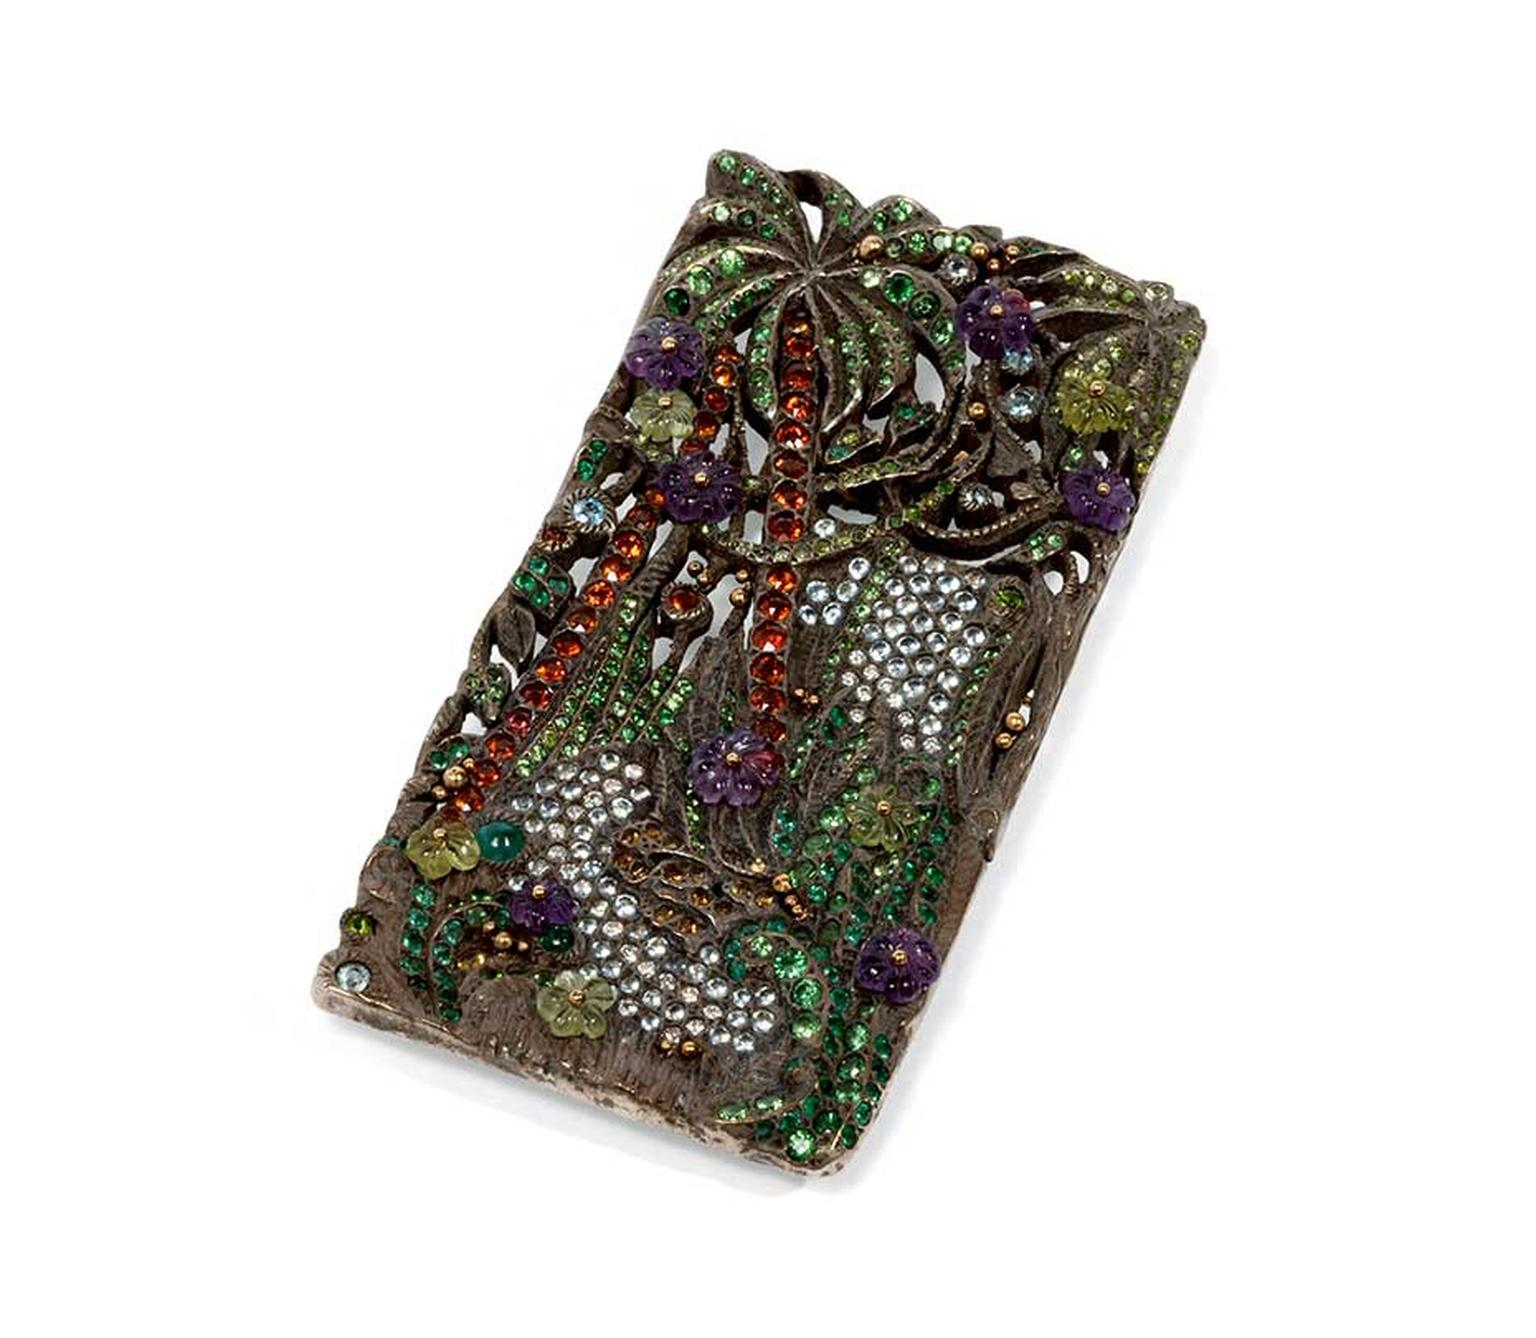 Jean Boggio Jungle River brooch/pendant in gold and silver with amethyst, aquamarine, emerald, garnet, tsavorite and blue topaz.